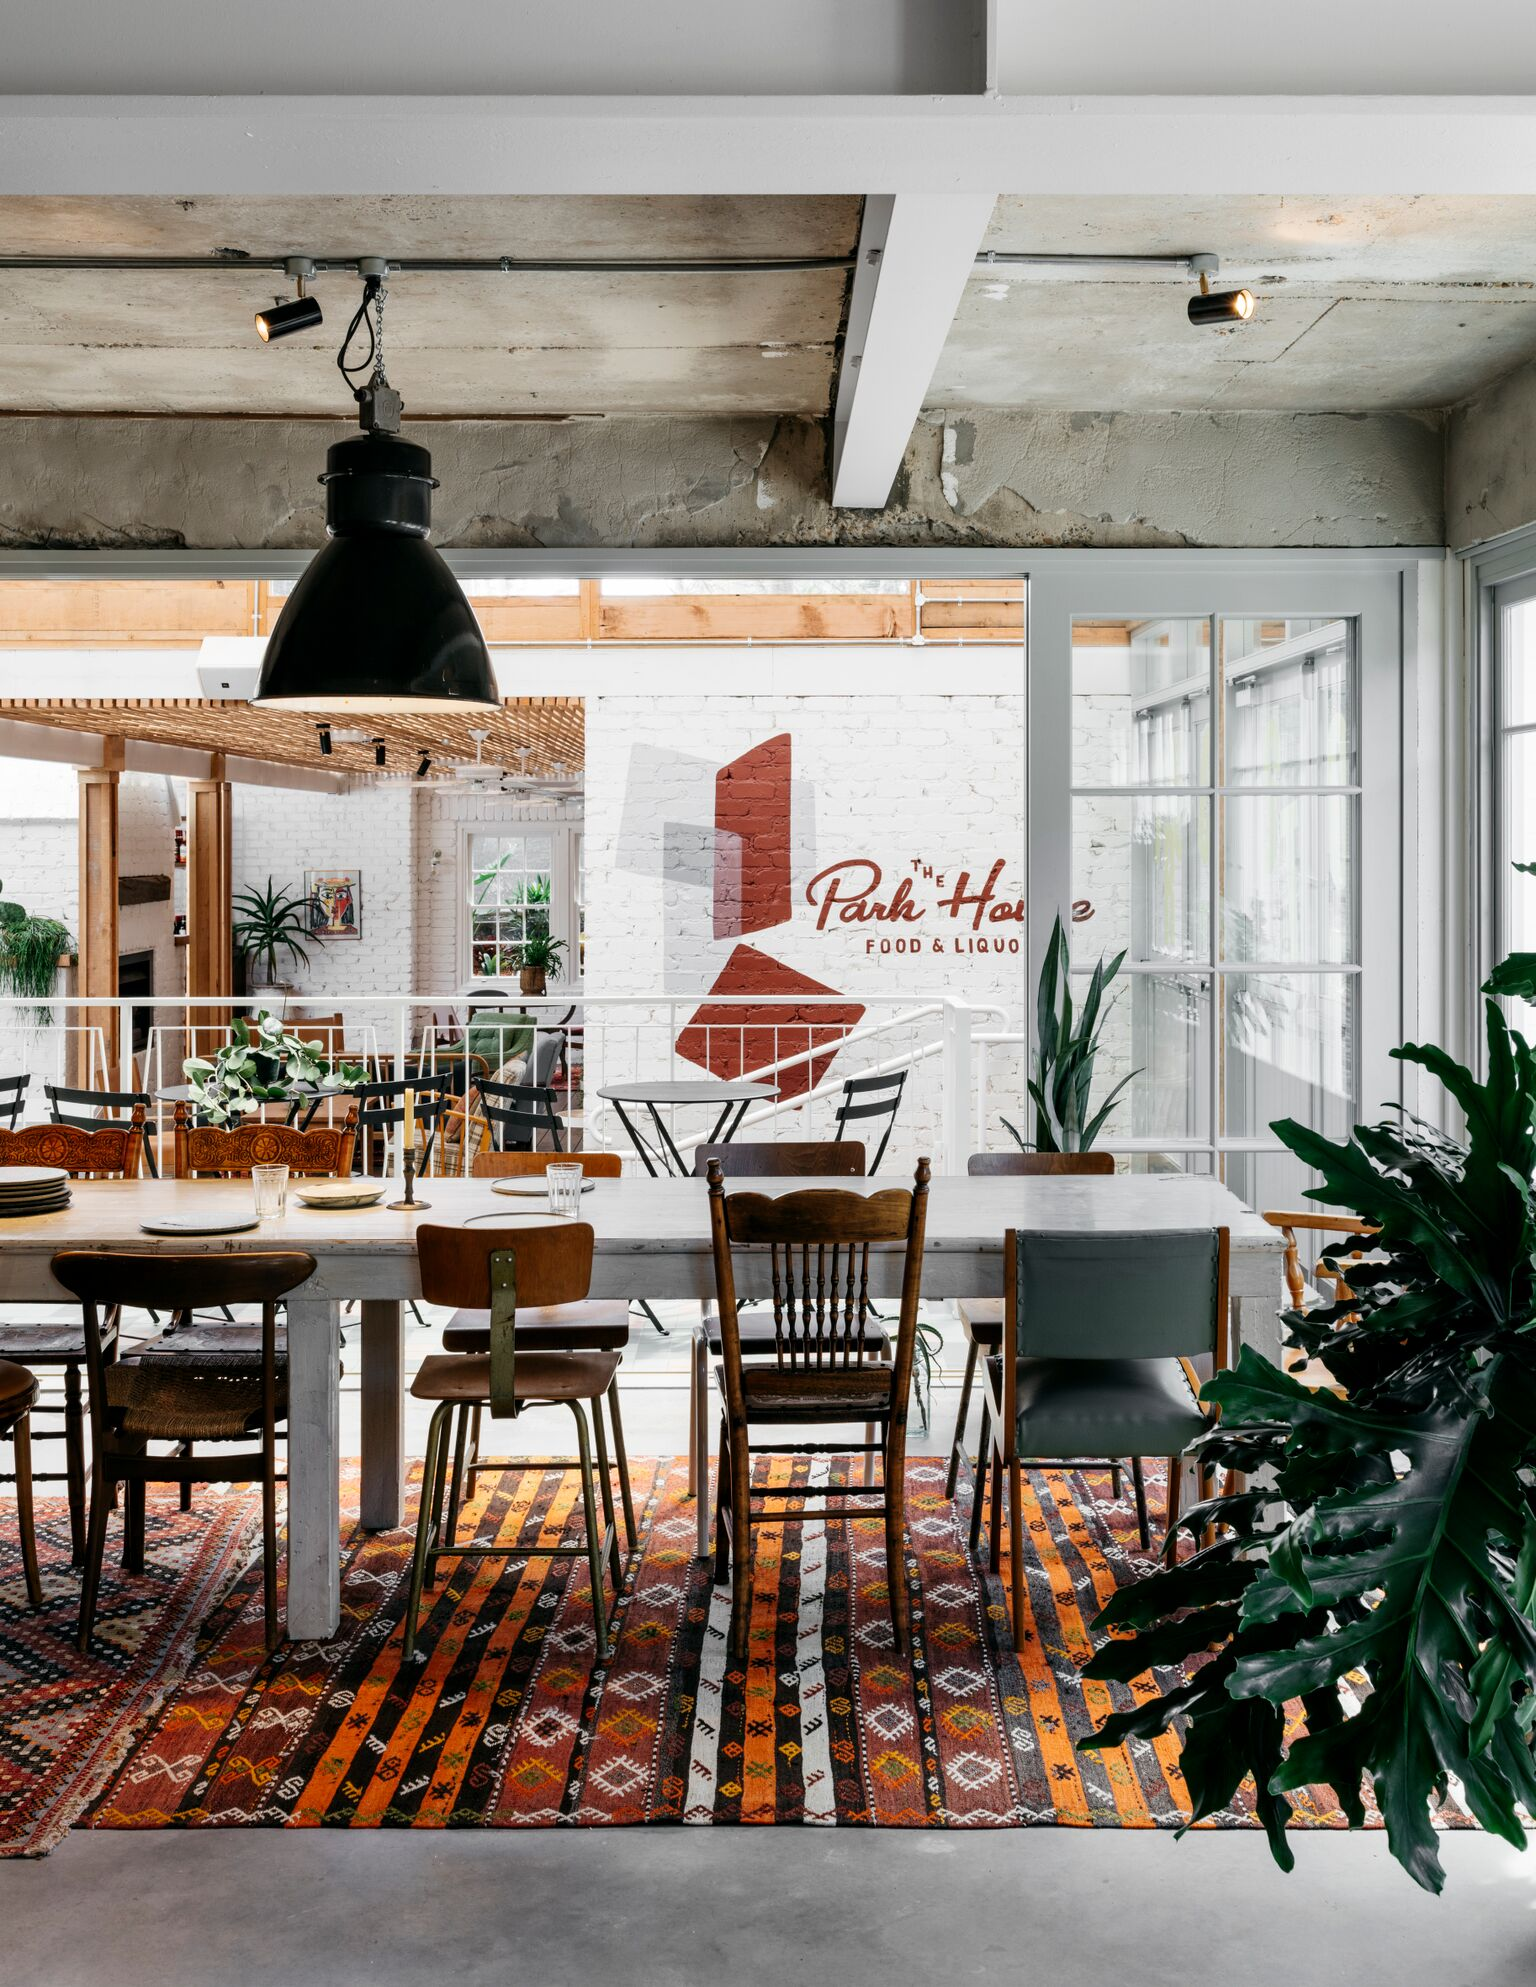 Gallery Of Park House Food Merchants By Alexander & Co Local Australian Cafe Interior Design Mona Vale, Nsw Image 18